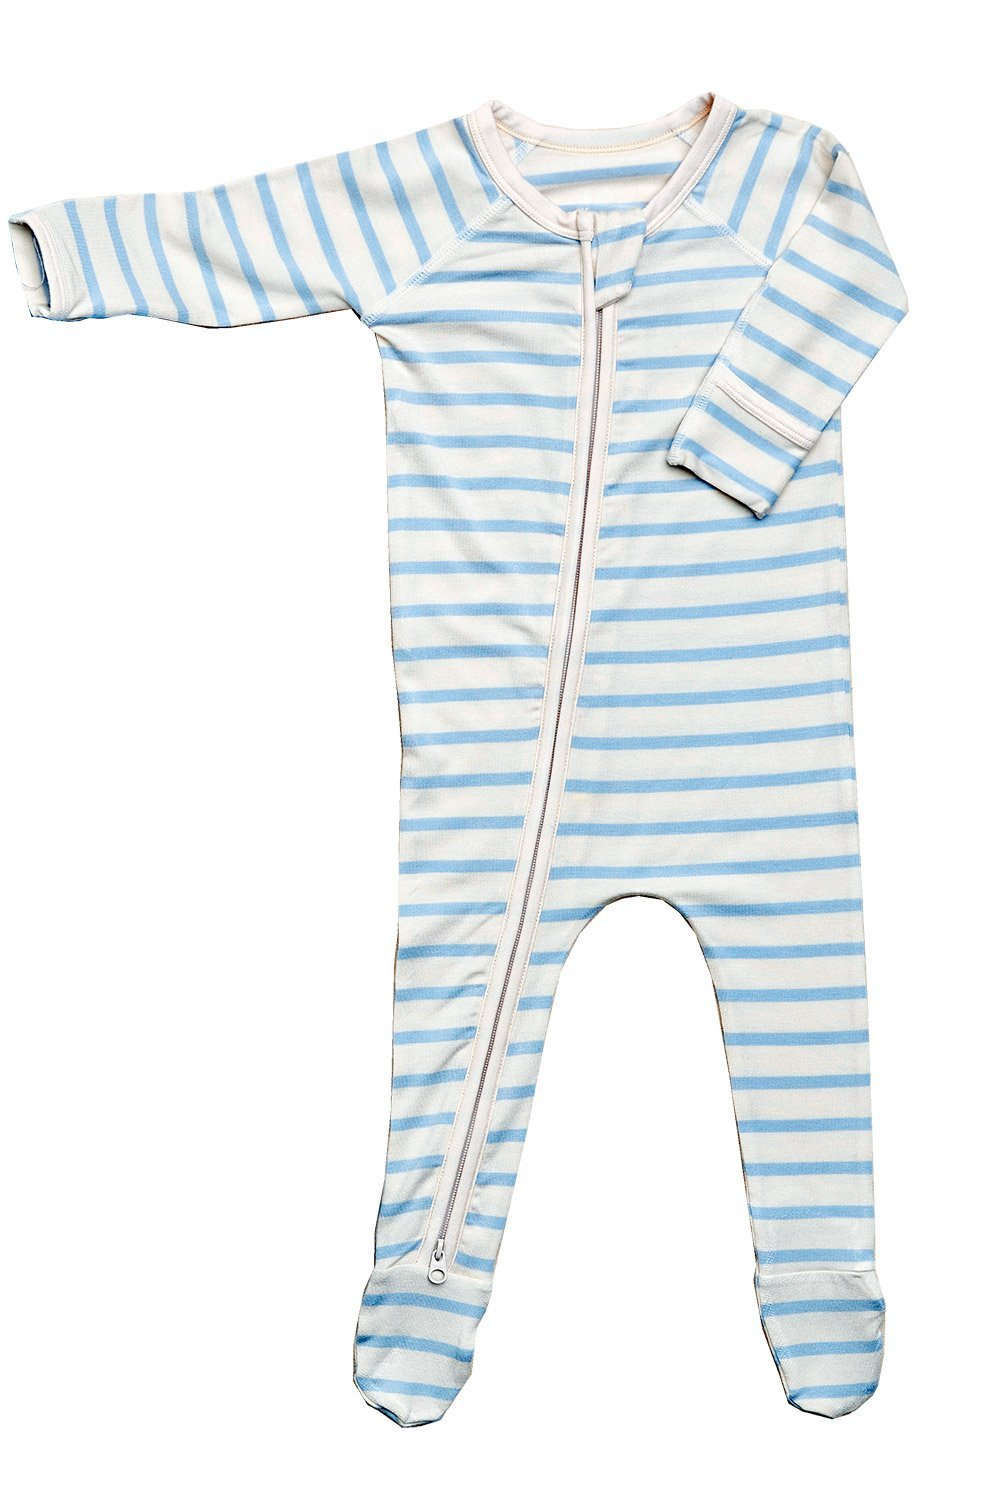 Boody Body Baby EcoWear Long Sleeve Onesie - Soft Blanket Sleeper with Built in Mittens Made from Natural Organic Bamboo - Soft Eco Fashion for Sensitive Skin - Striped Sky Blue-Chalk, 0-3 Months